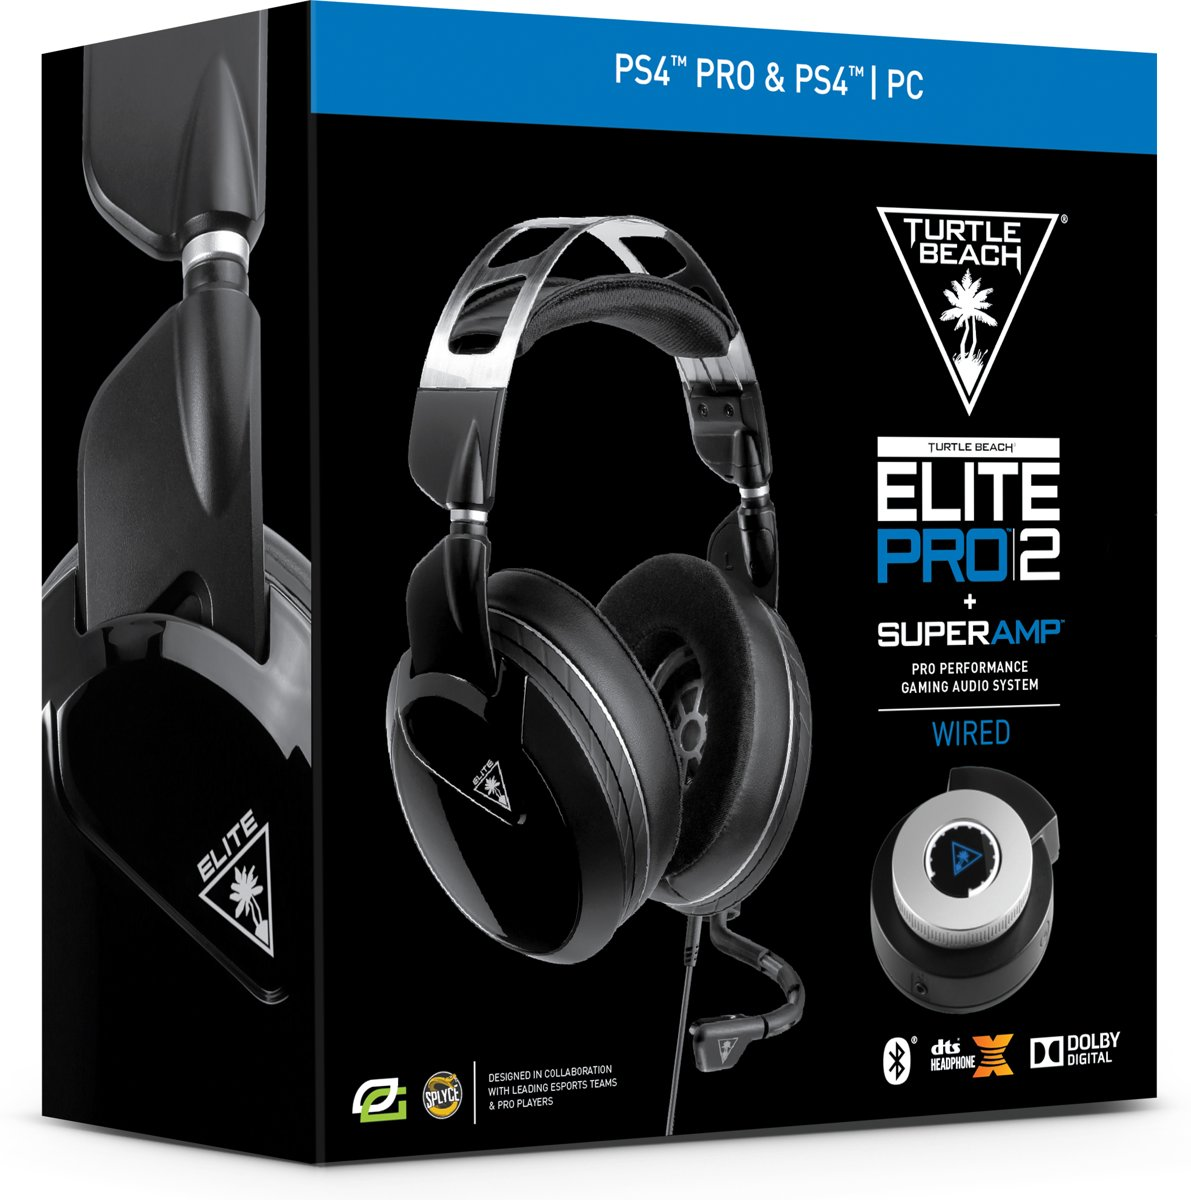 Elite Pro 2 + Super AMP - PS4 + PC - Zwart